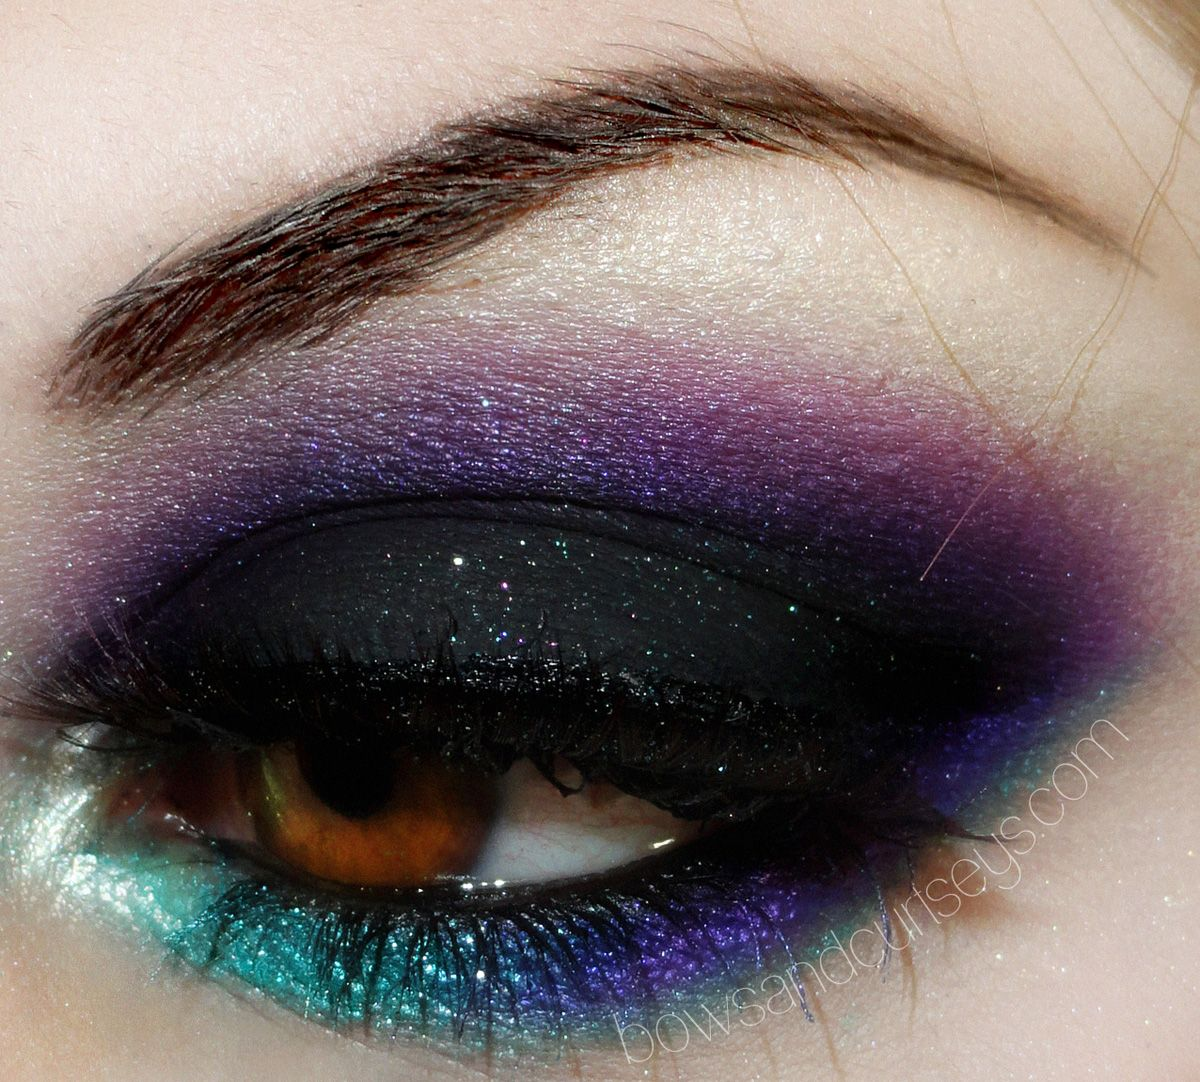 Why cant normal people do their makeup like this?!?!?!???? SO